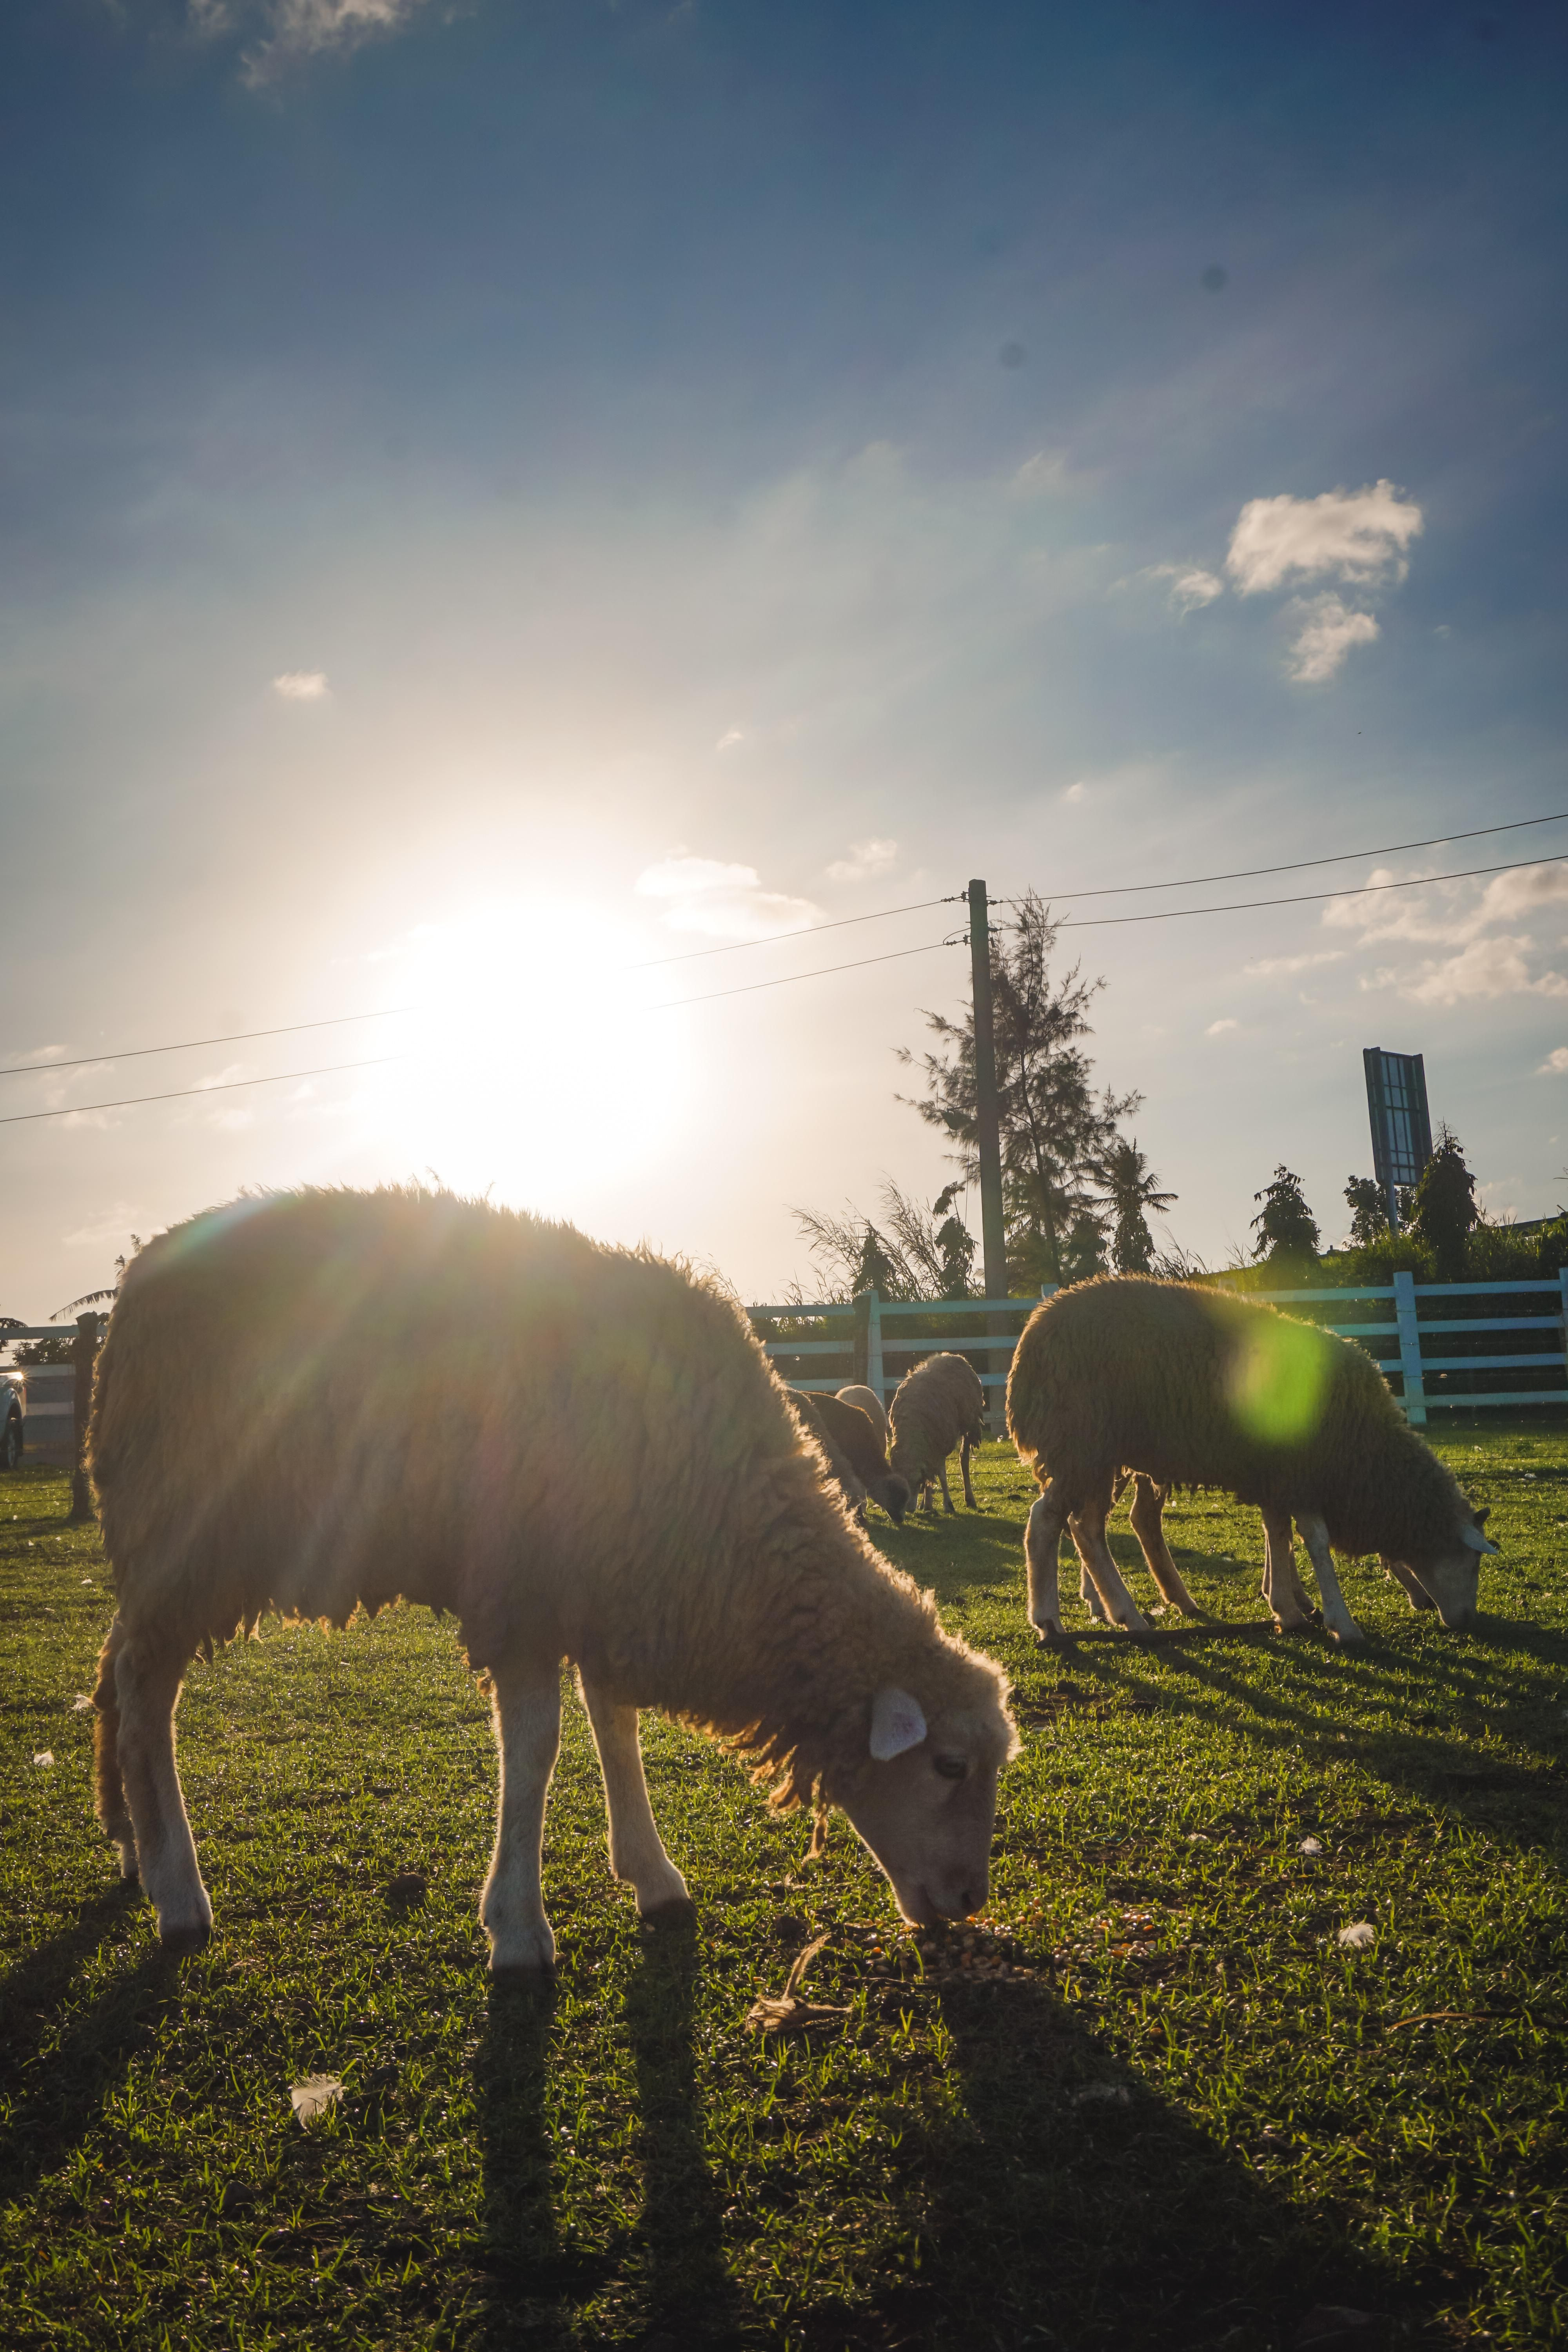 ITAP of sheep during golden hour.#PHOTO #CAPTURE #NATURE #INCREDIBLE